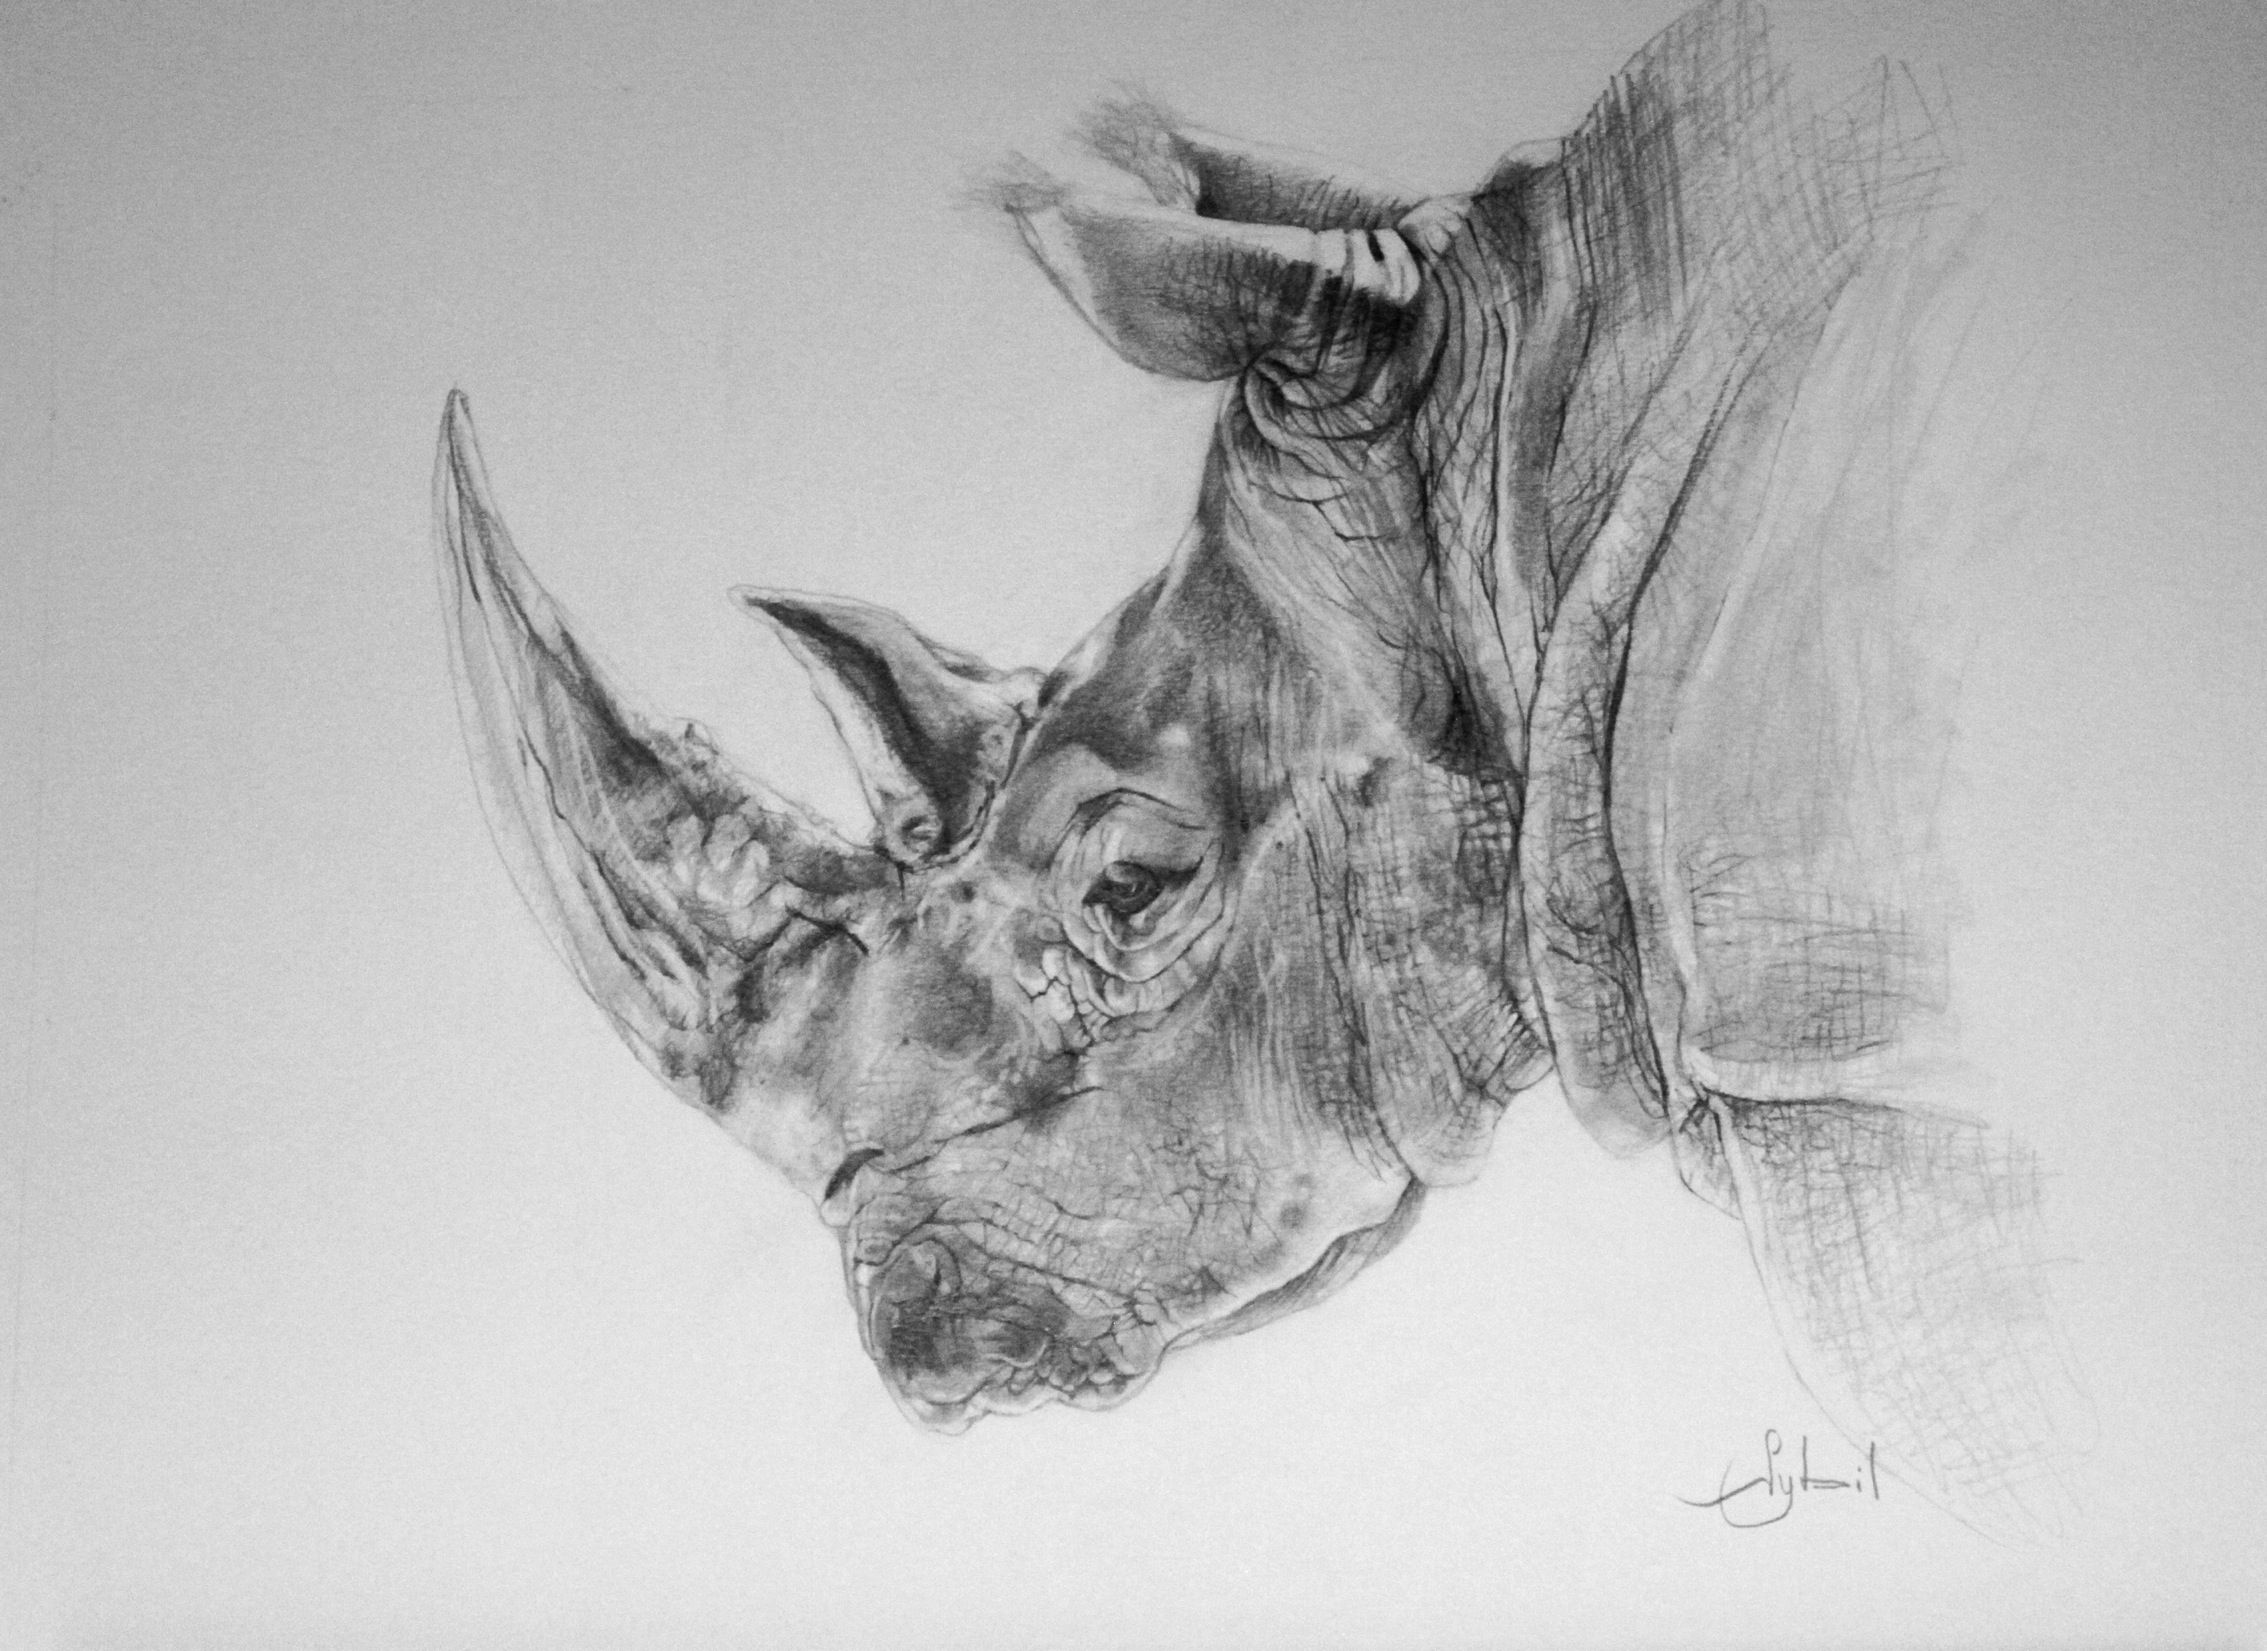 rhino drawings black rhino by lil el art on deviantart drawings rhino